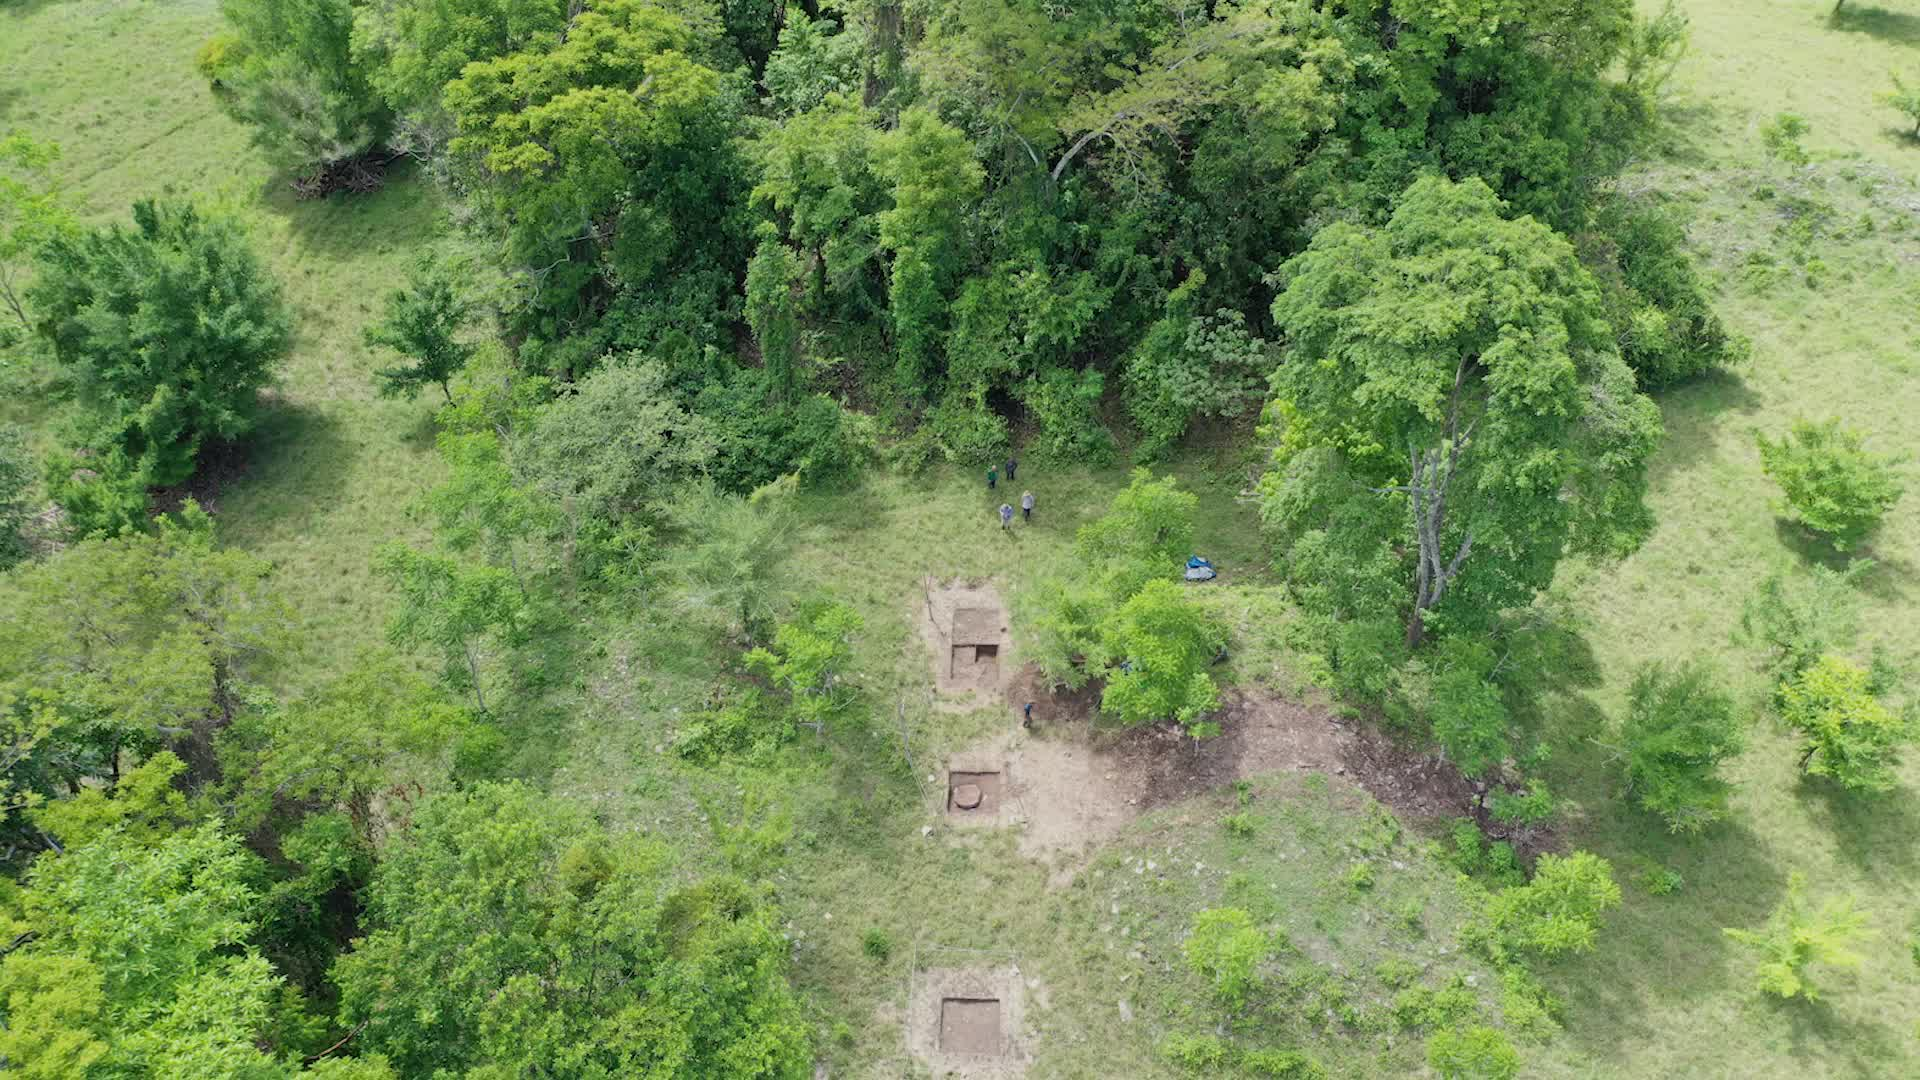 Archaeologists discovered the long-lost capital of a small Maya kingdom on a cattle ranch in Chiapas, Mexico, near the Guatemala border.